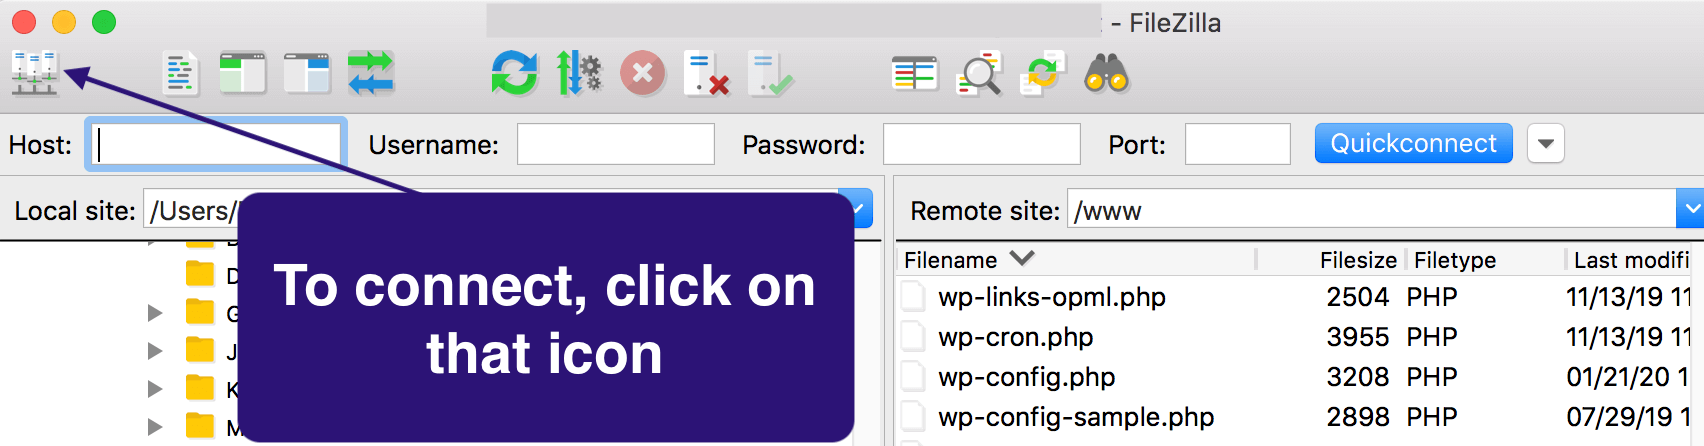 Starting a connection on FileZilla